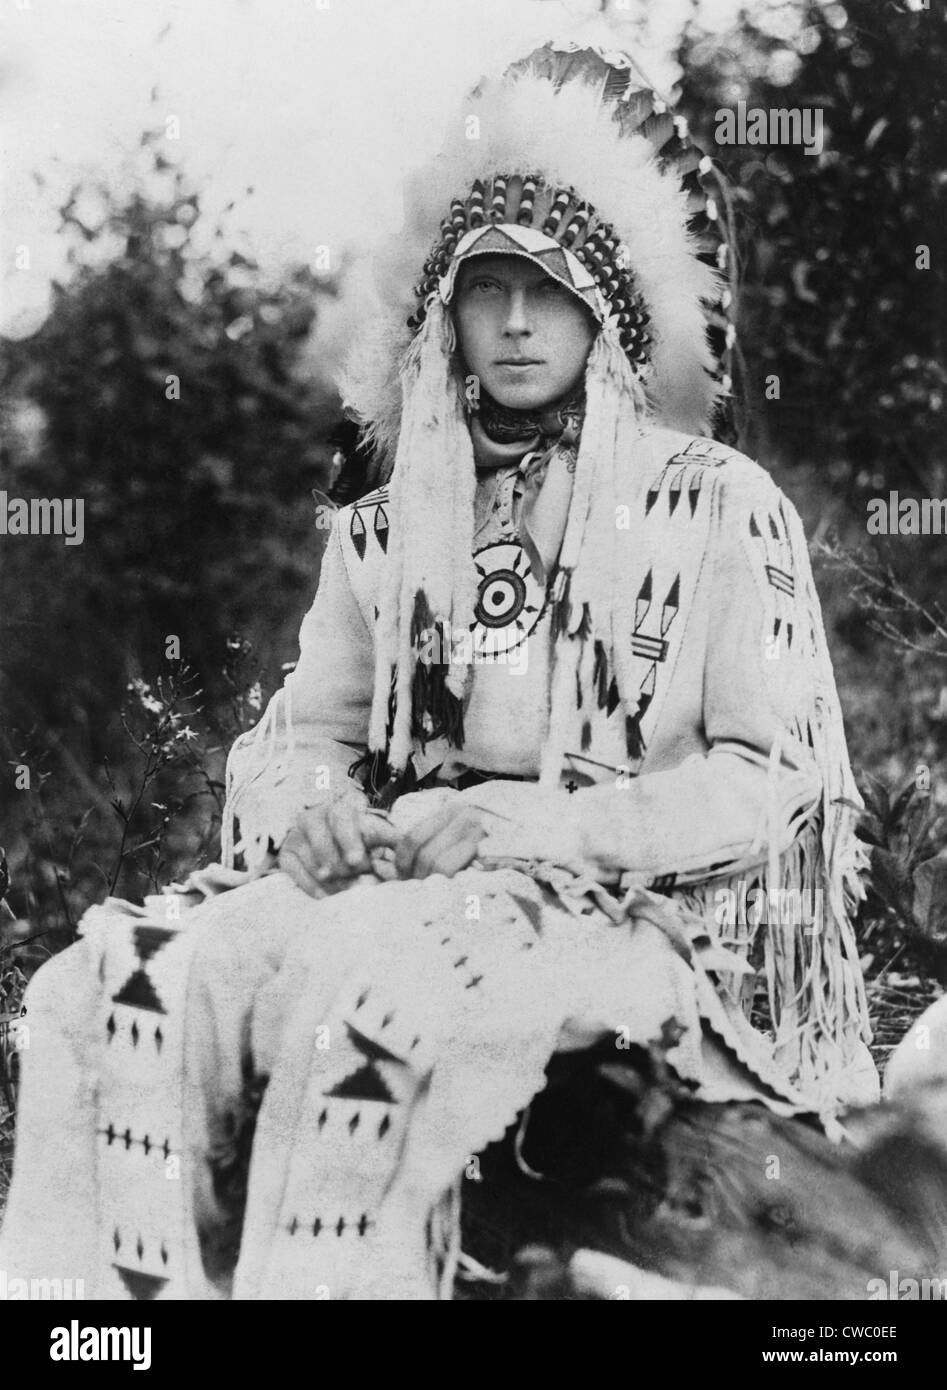 Britain's King Edward VIII as Prince of Wales, wearing the headdress of a Native American chief during a visit to Stock Photo